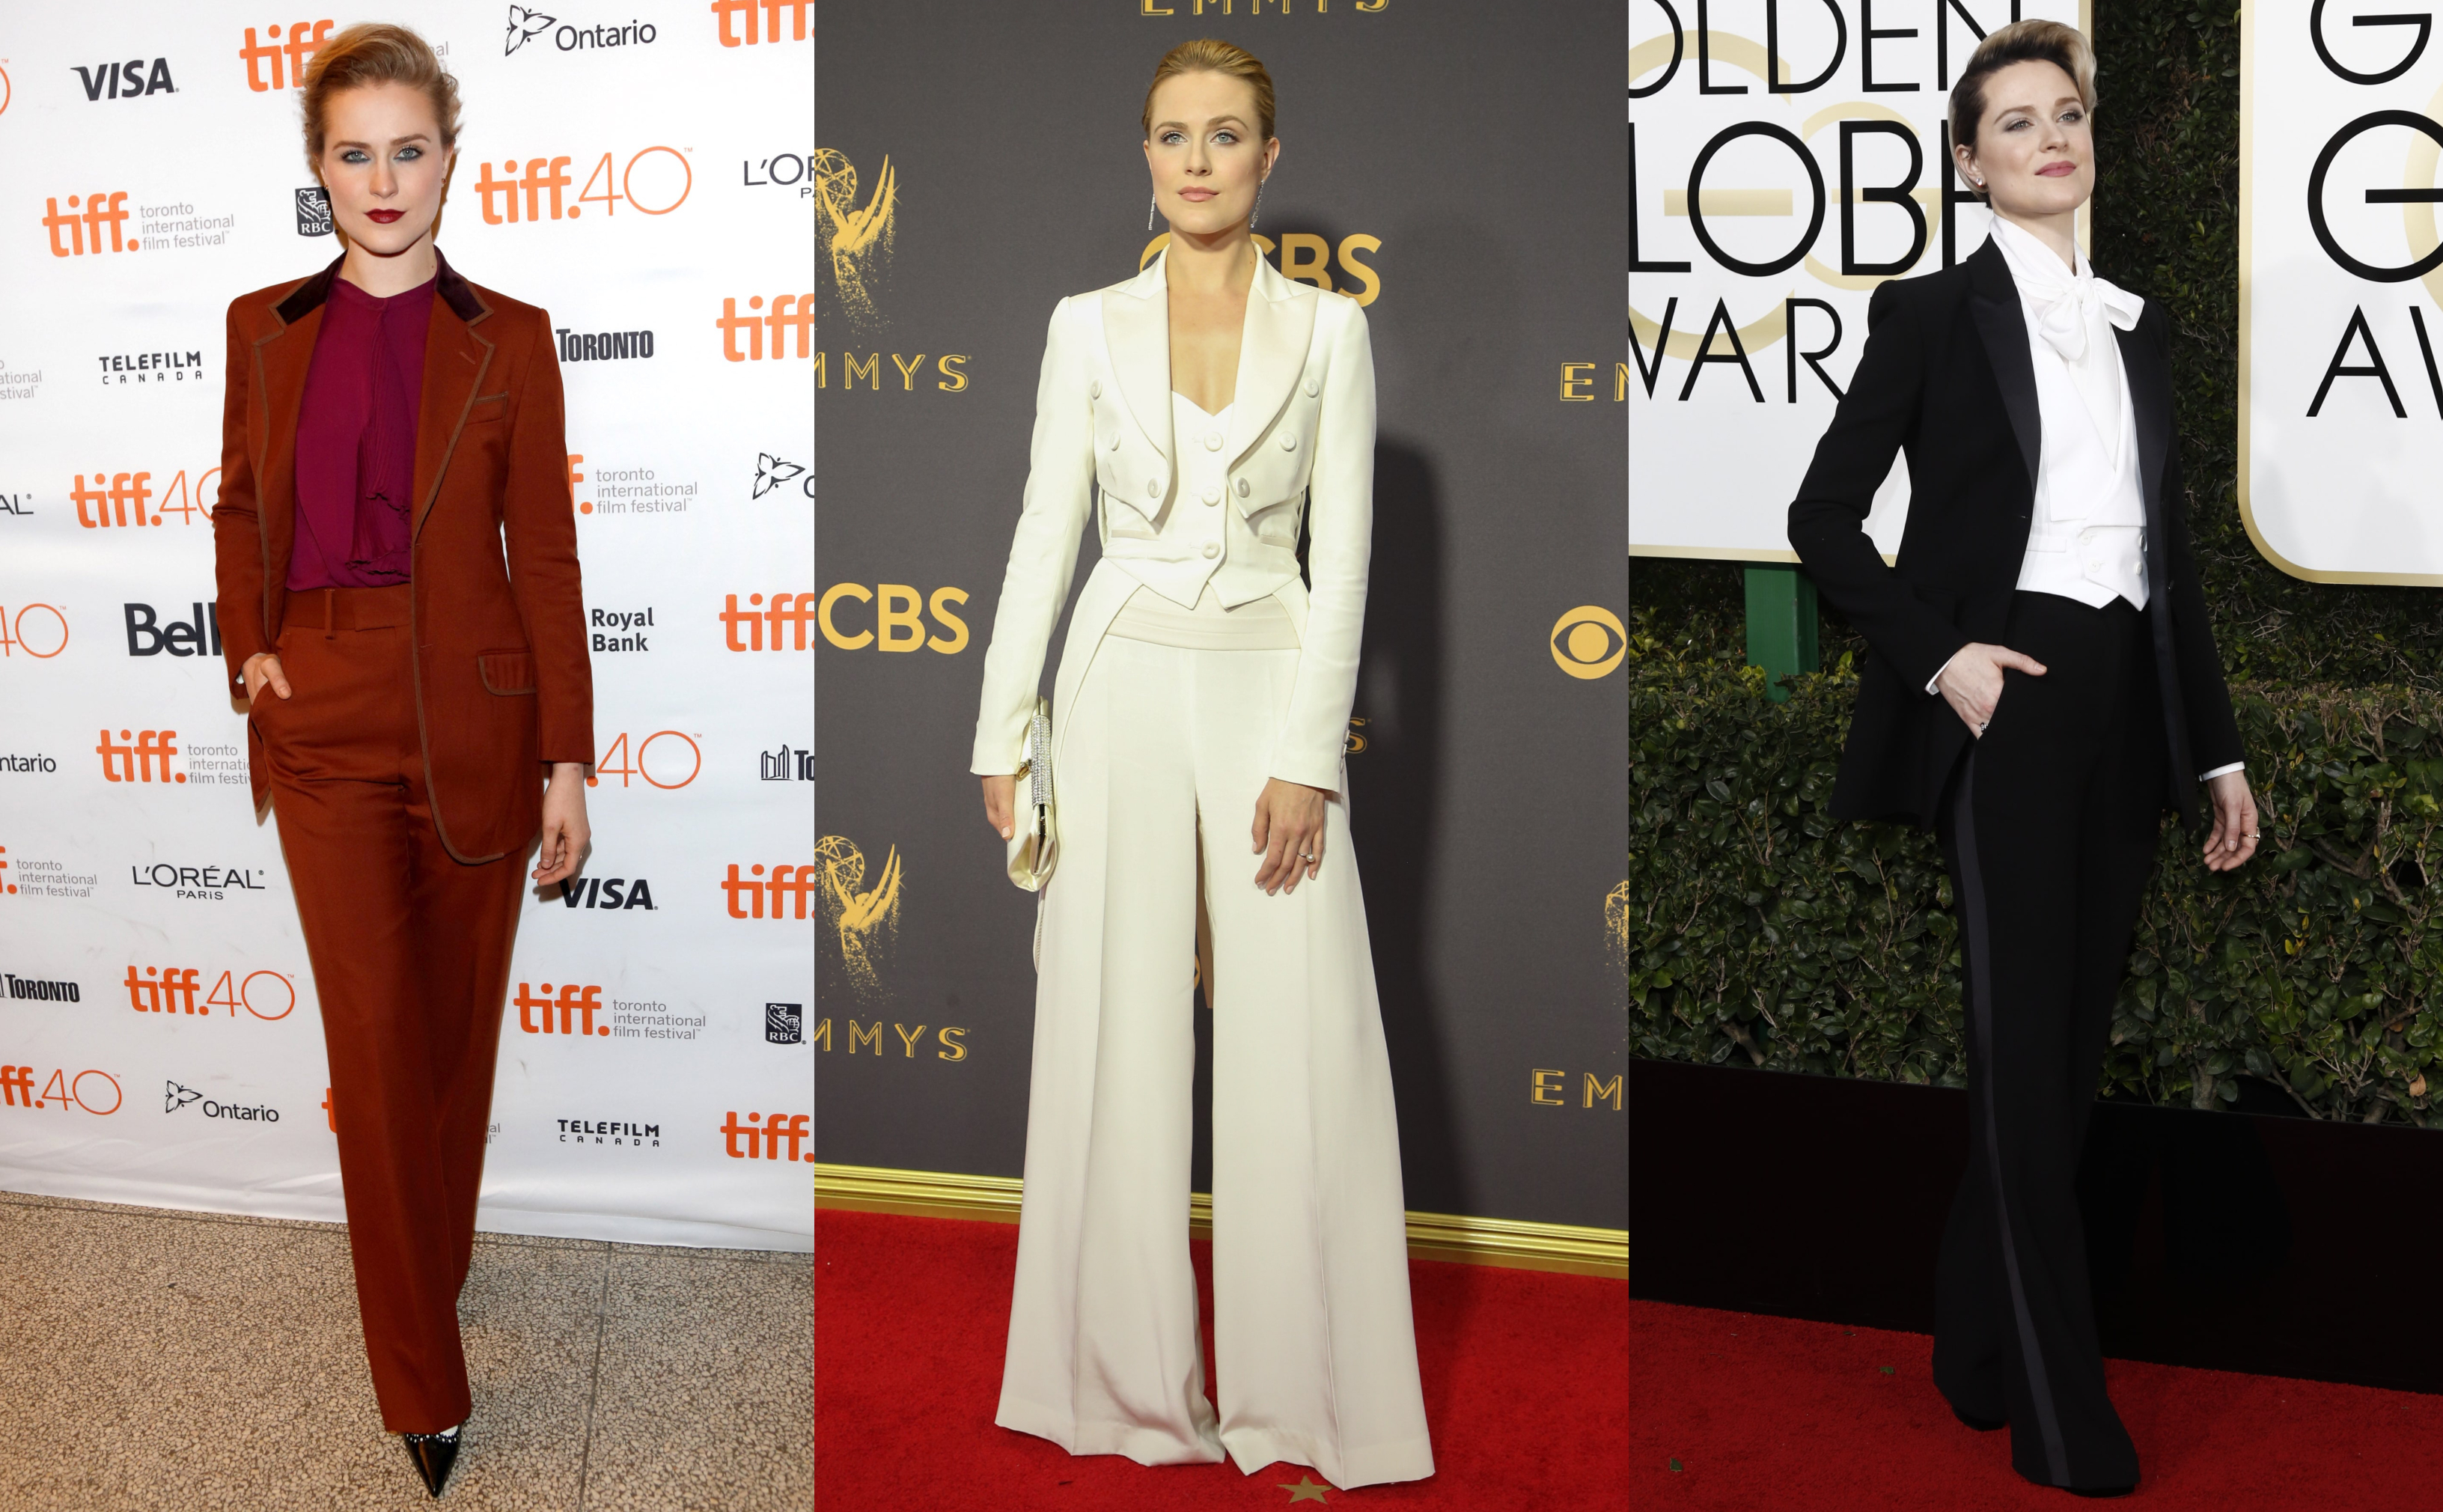 No night gown can compete with Evan Rachel Wood's epic suit game every time she walks down the red carpet. (Photo: WENN)